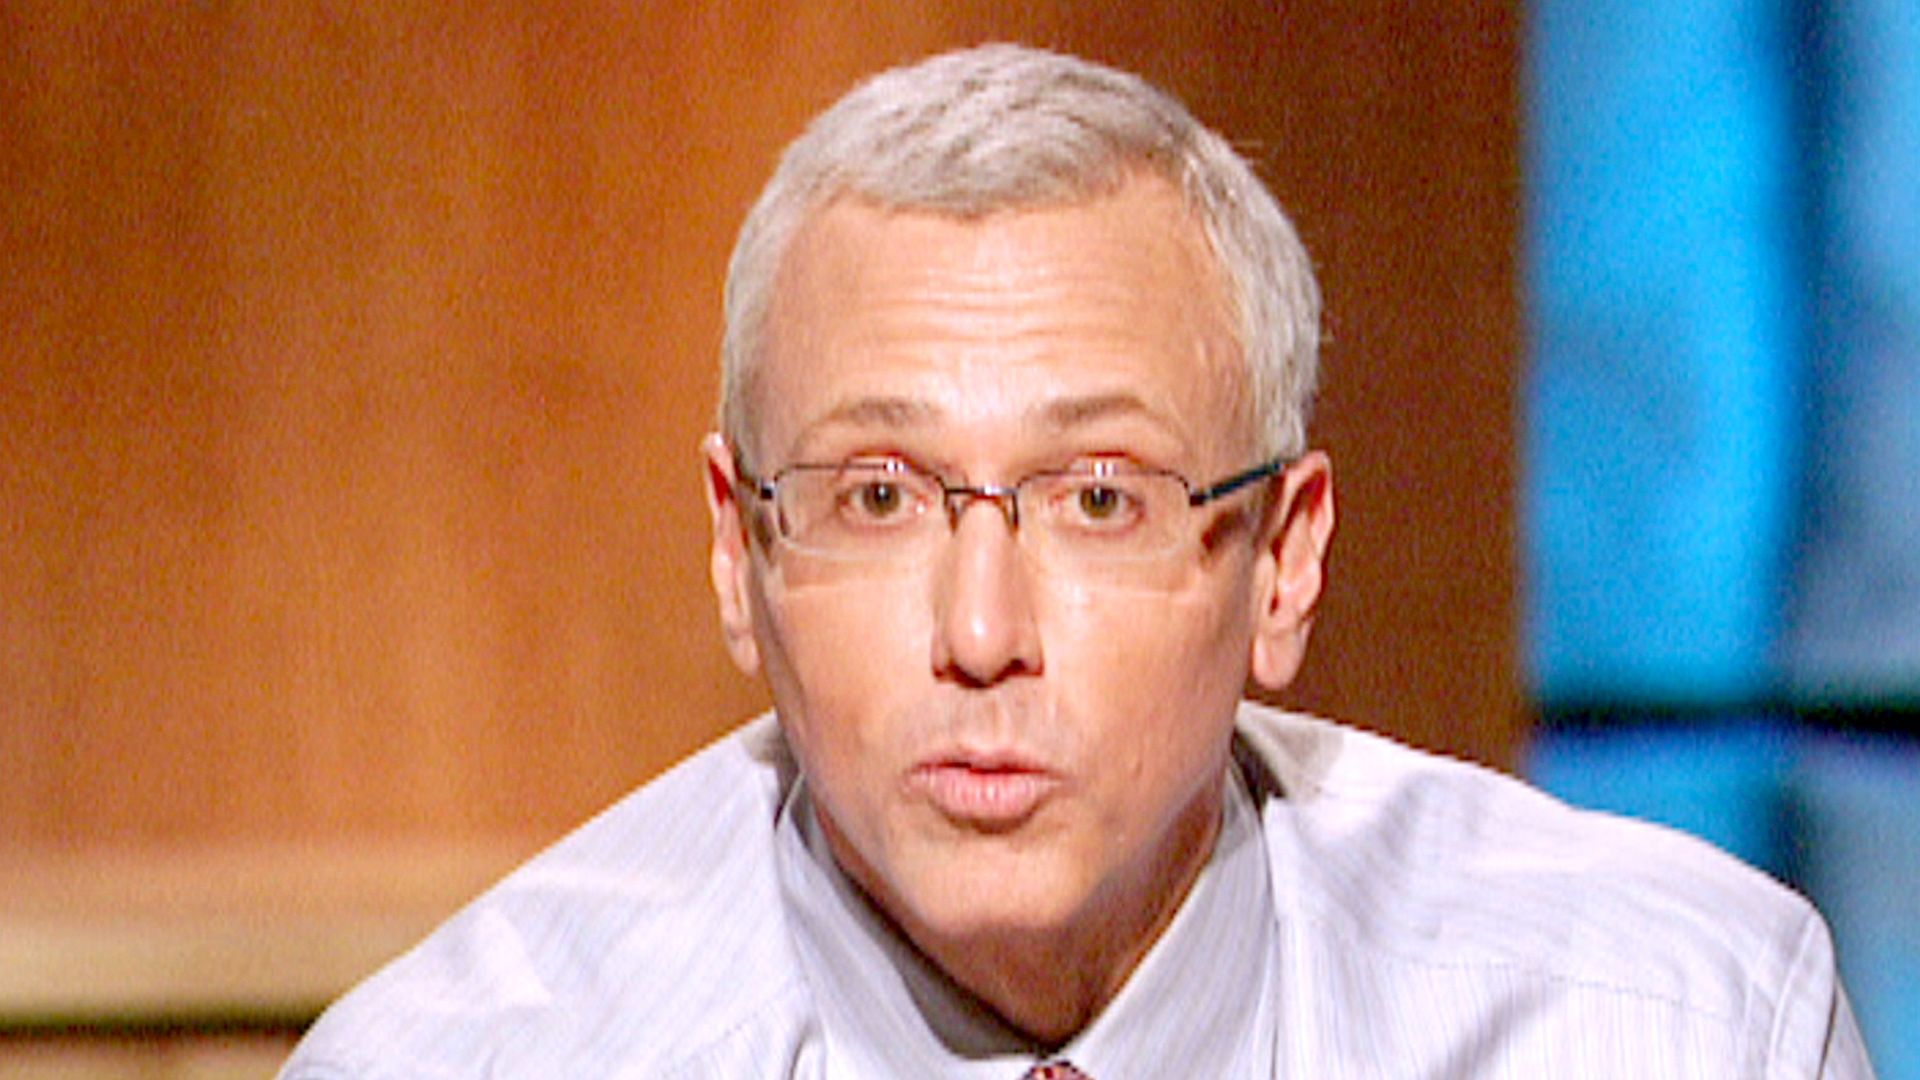 List of Celebrity Rehab with Dr. Drew episodes - Wikipedia